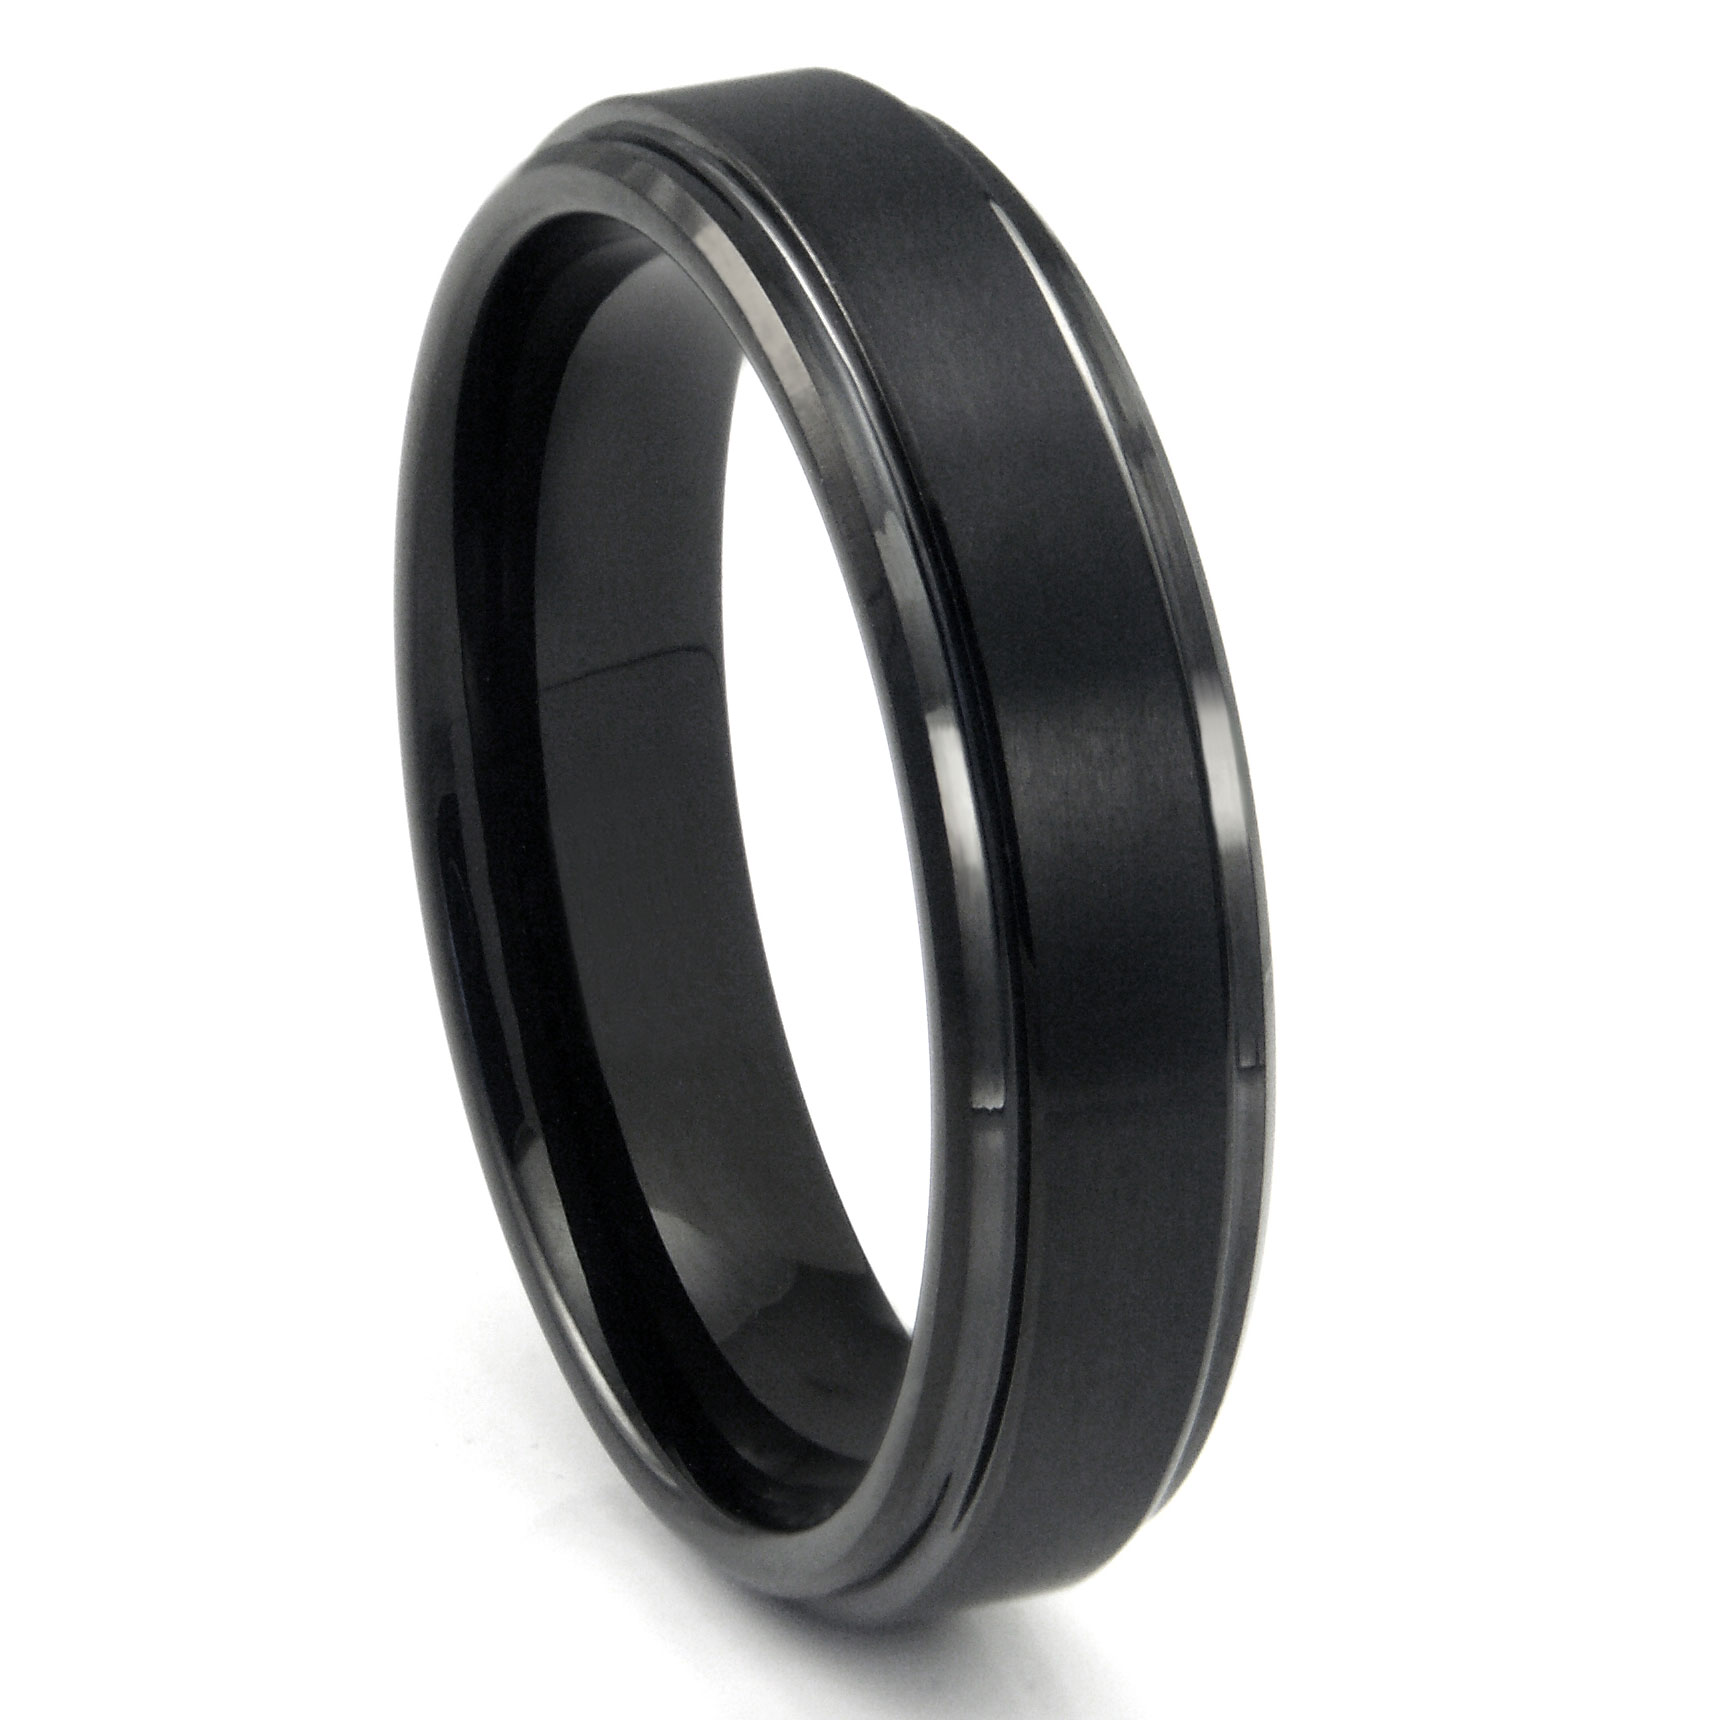 capri pattern by with band tread tire cobalt products wedding men for black benchmark rings tq